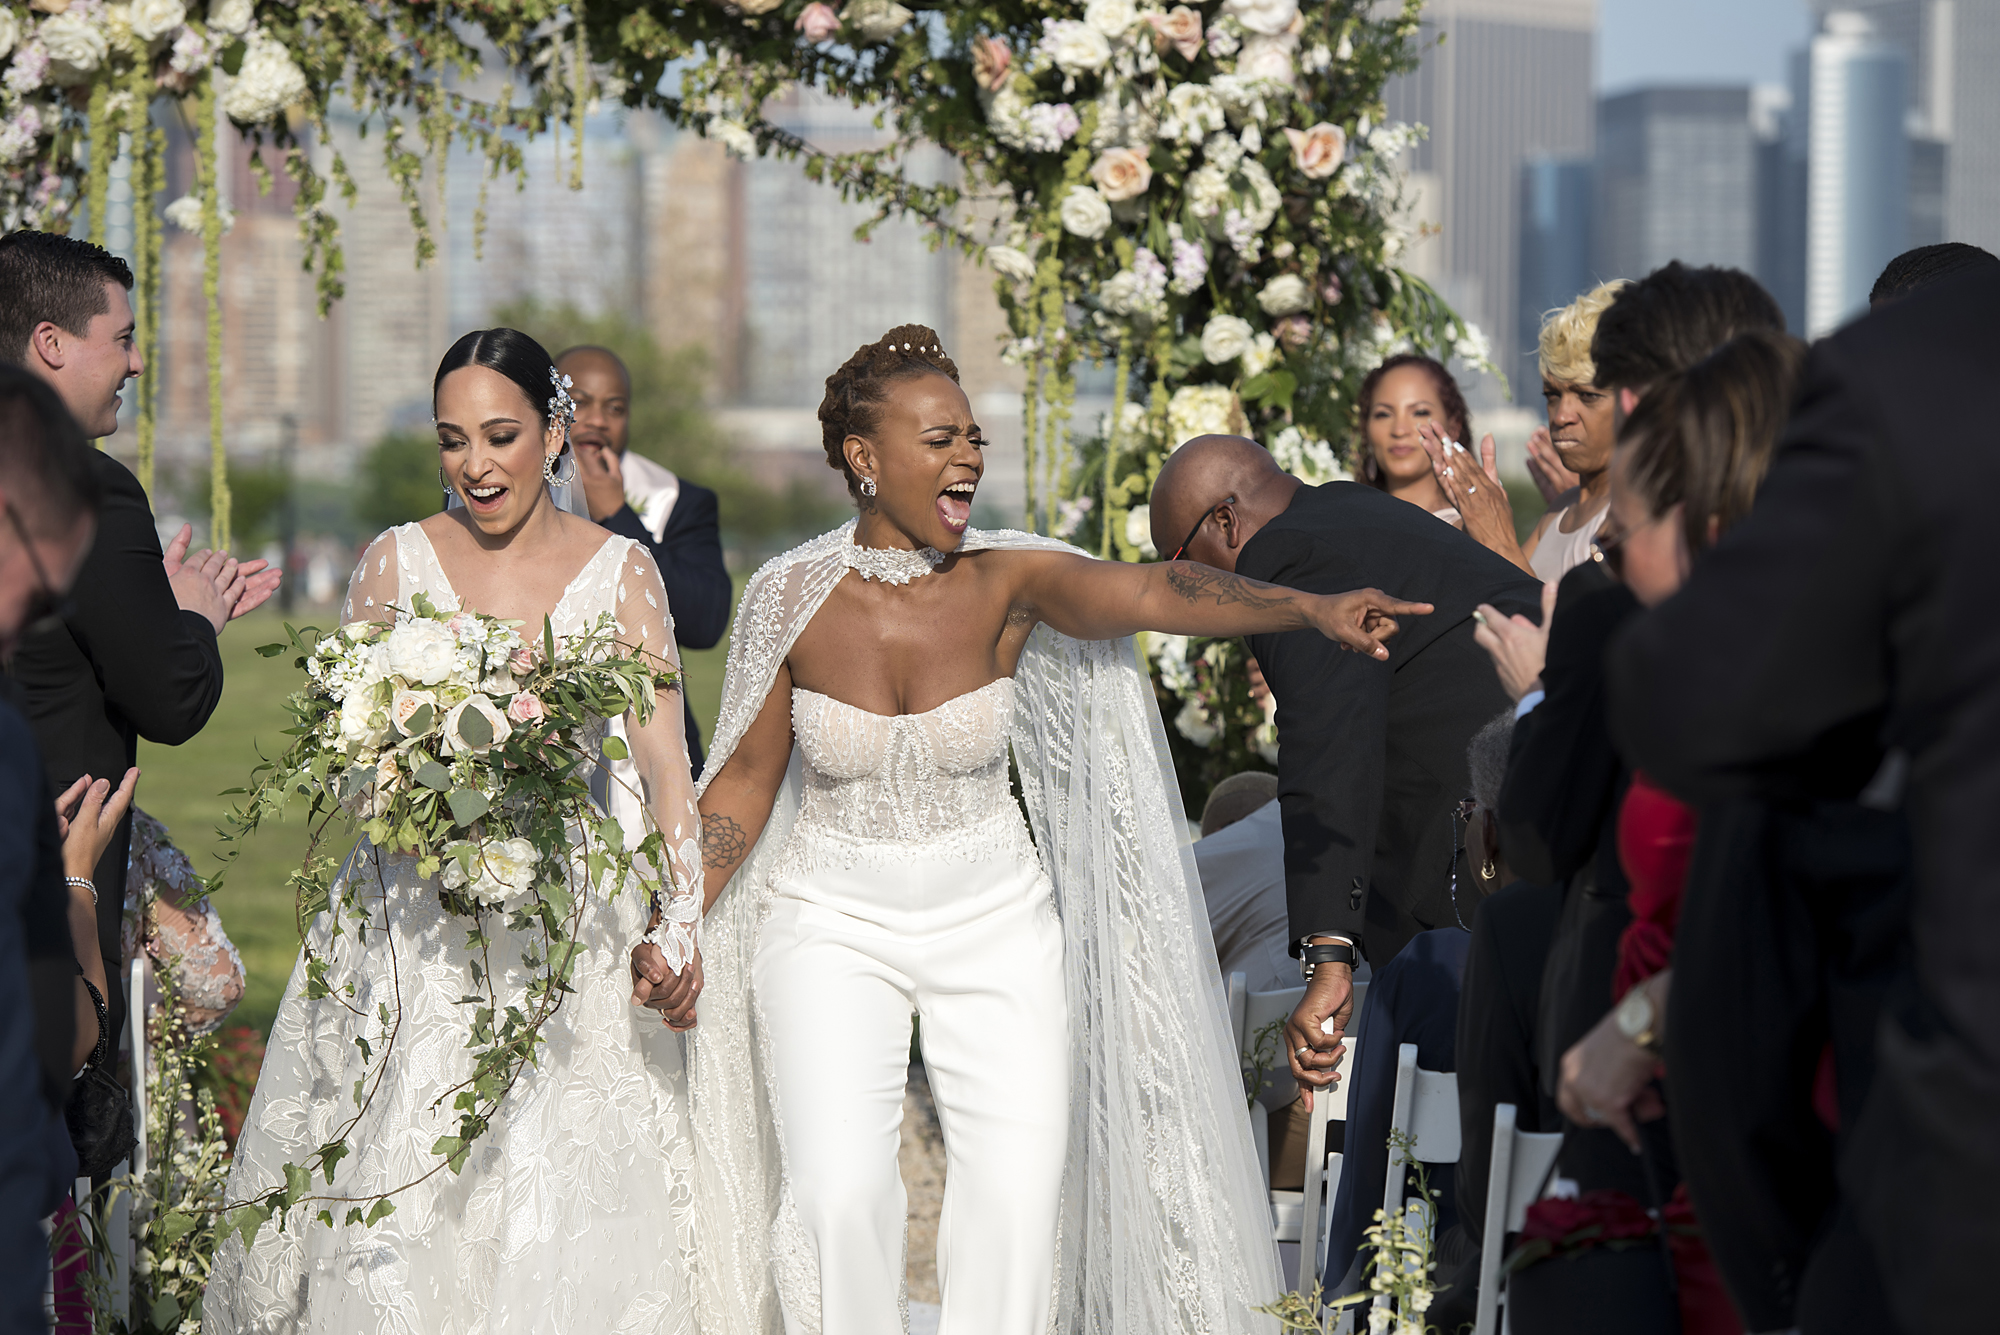 Two women walk back down the aisle after their wedding ceremony